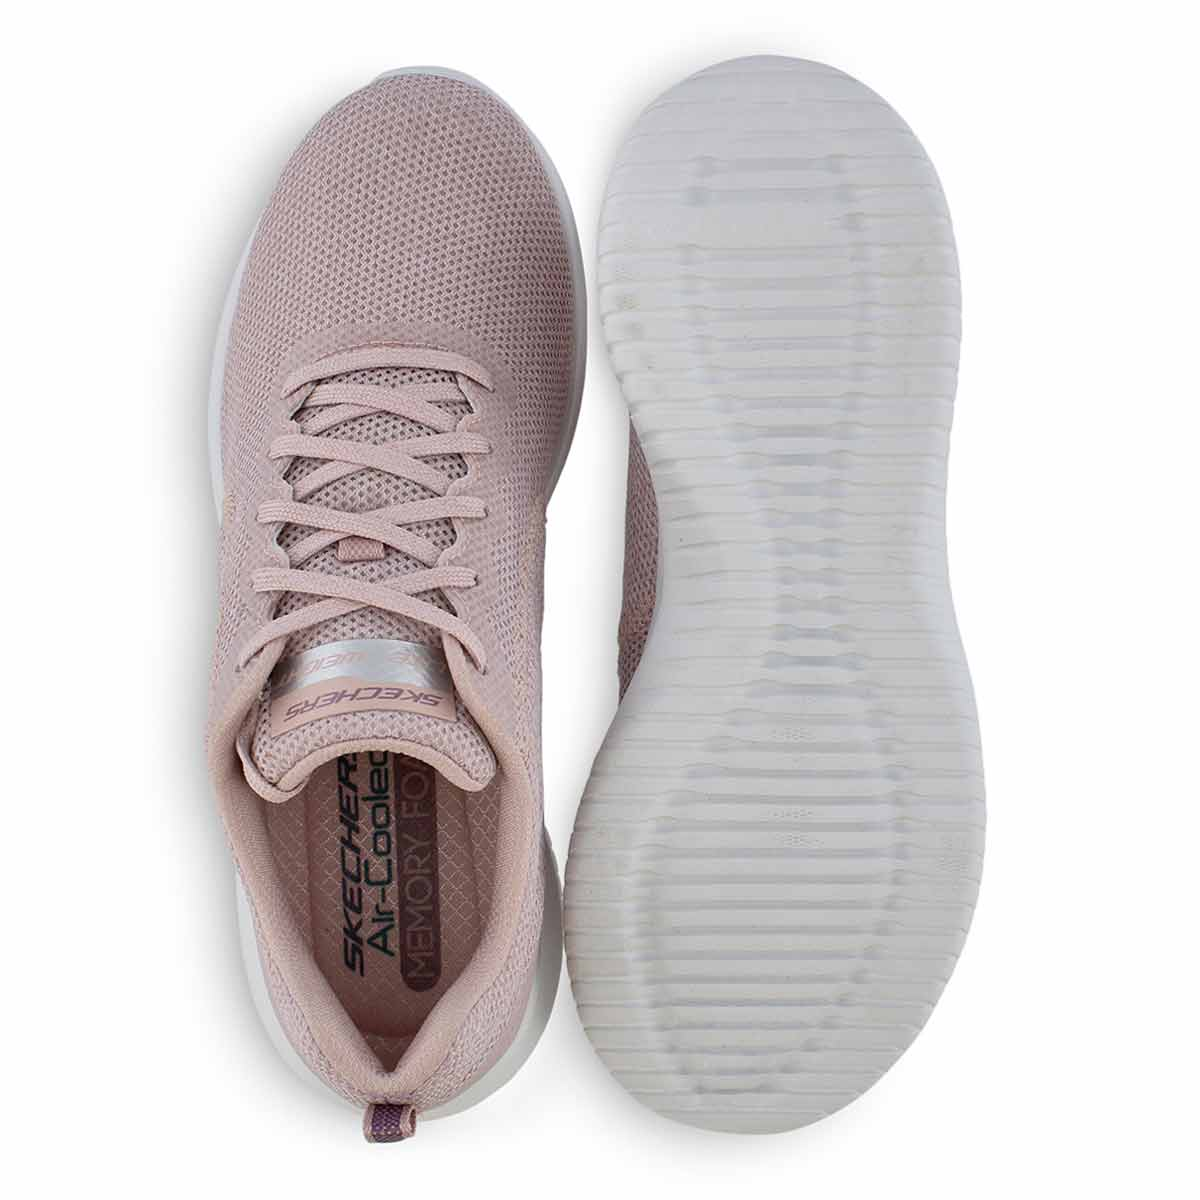 Lds Ultra Flex lt pnk lace up sneaker